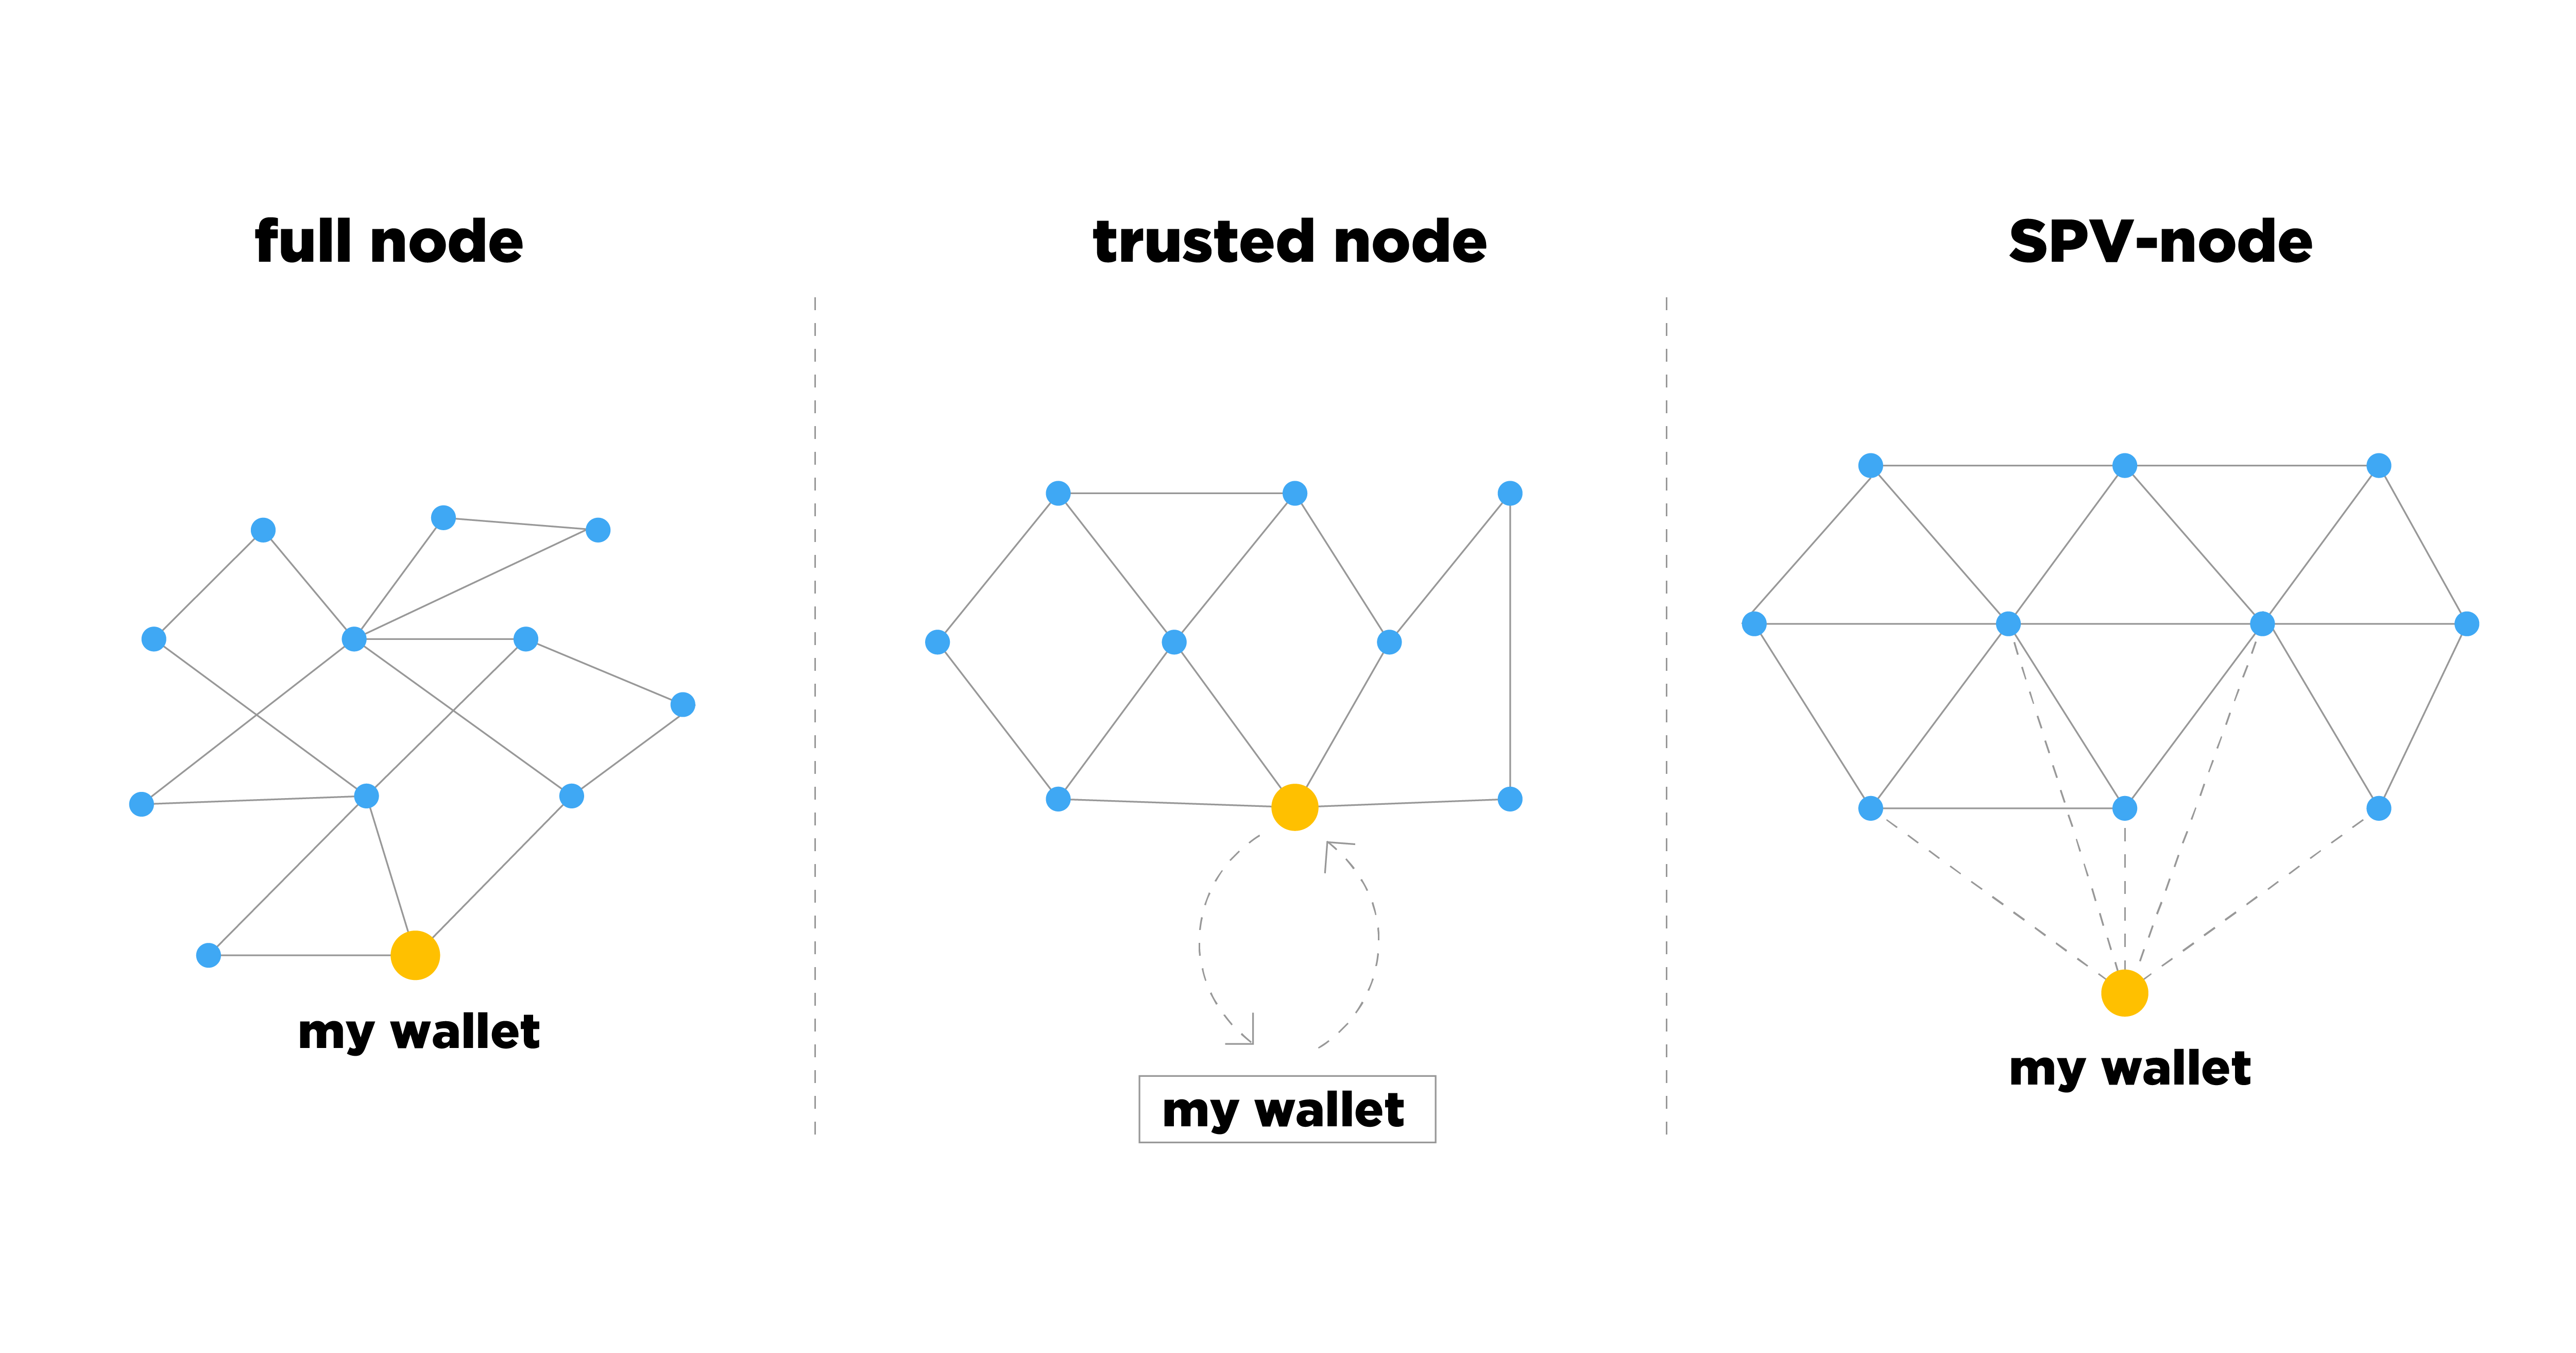 Synchronization of wallets with Bitcoin network